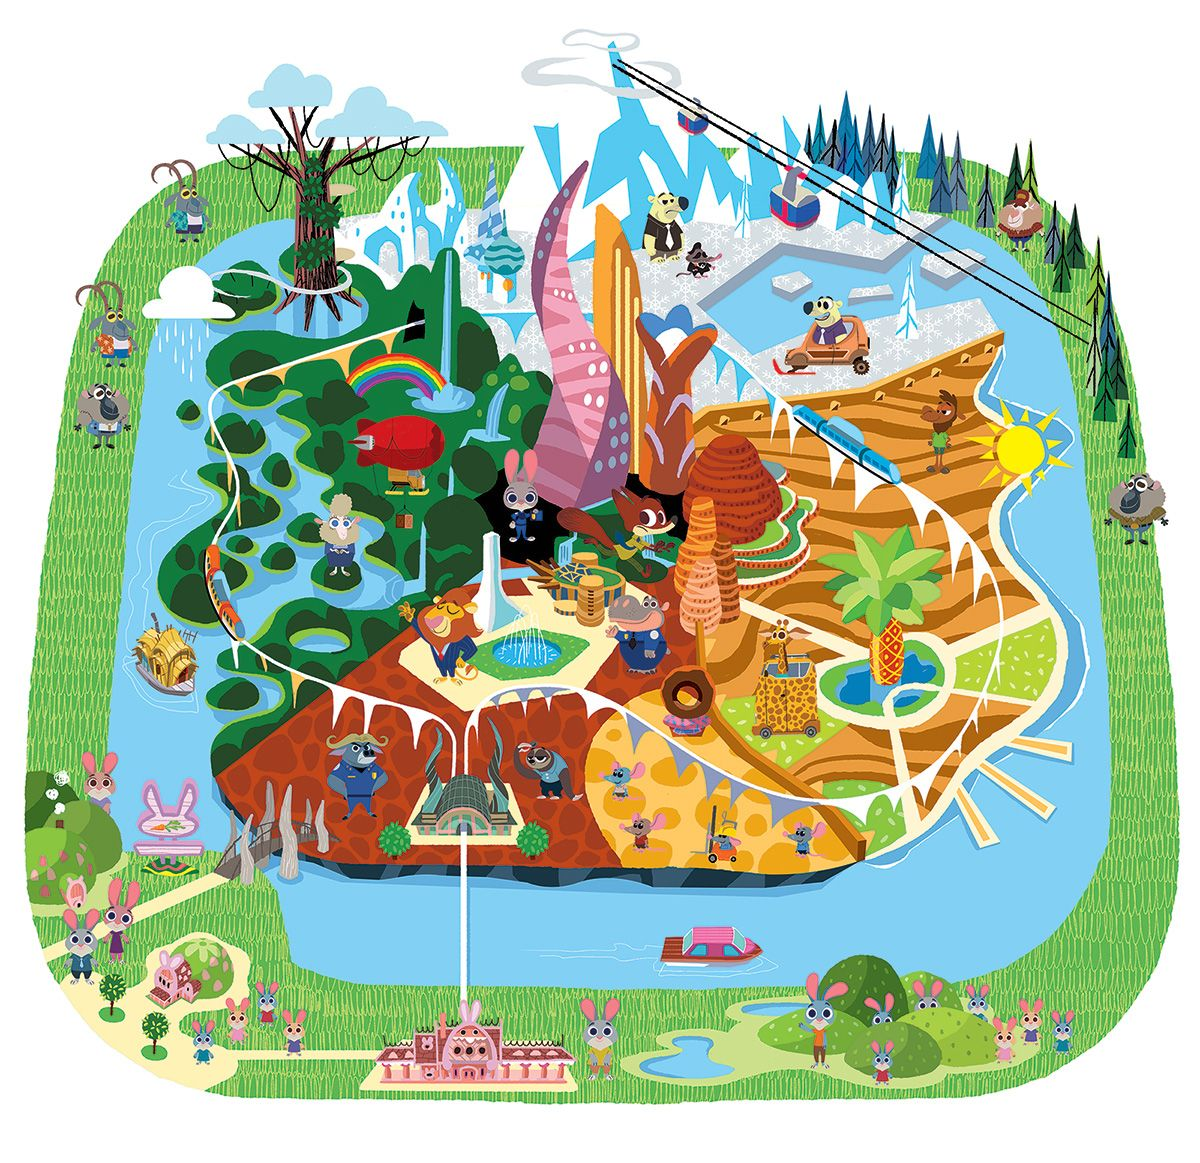 Disney Los Angeles Map.Map I Created For Zootopia Ricky De Los Angeles And I Worked